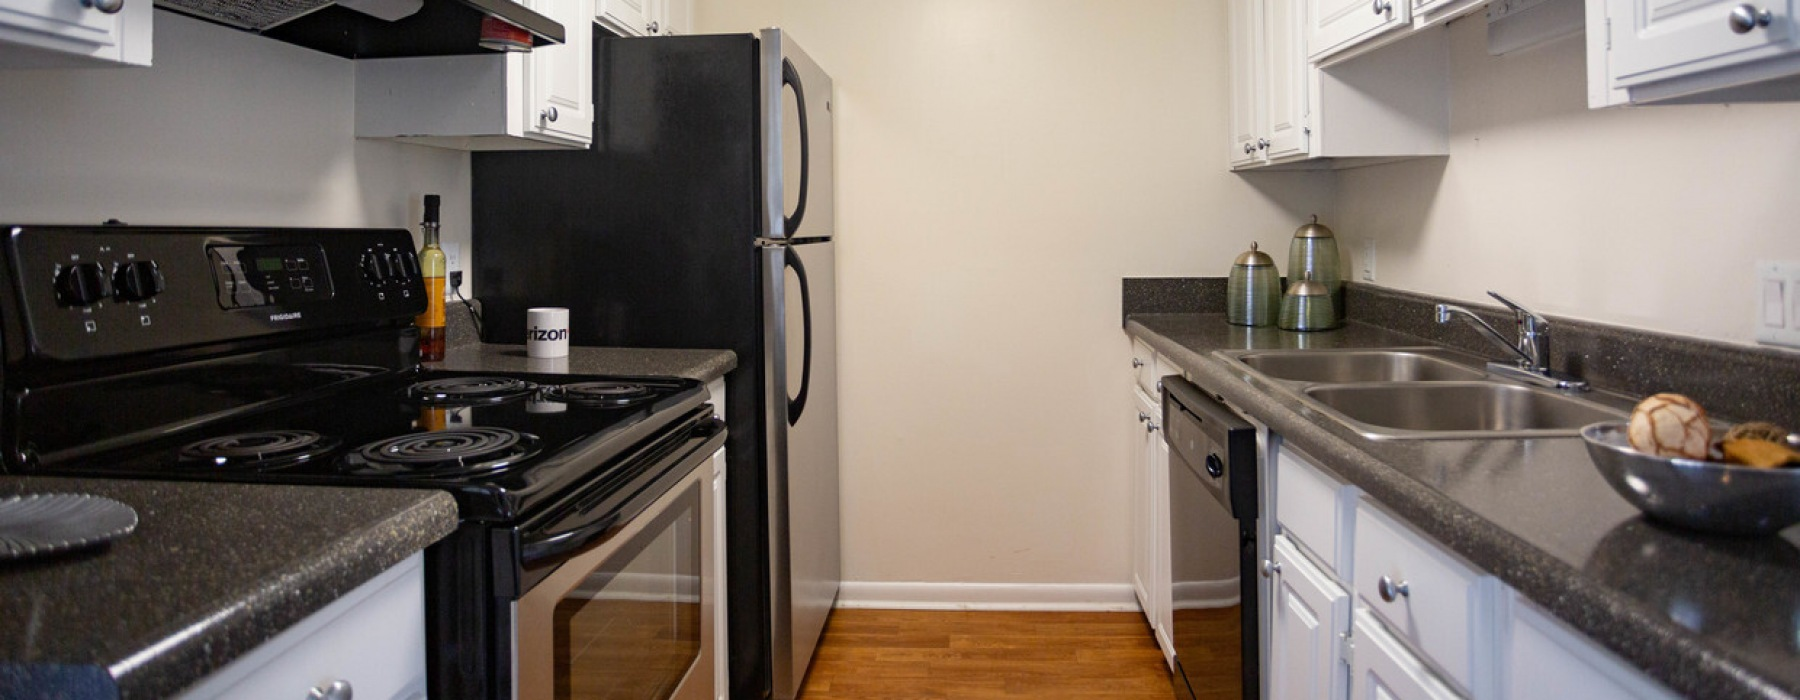 Stainless steel kitchen appliances and renovated, white cabinets